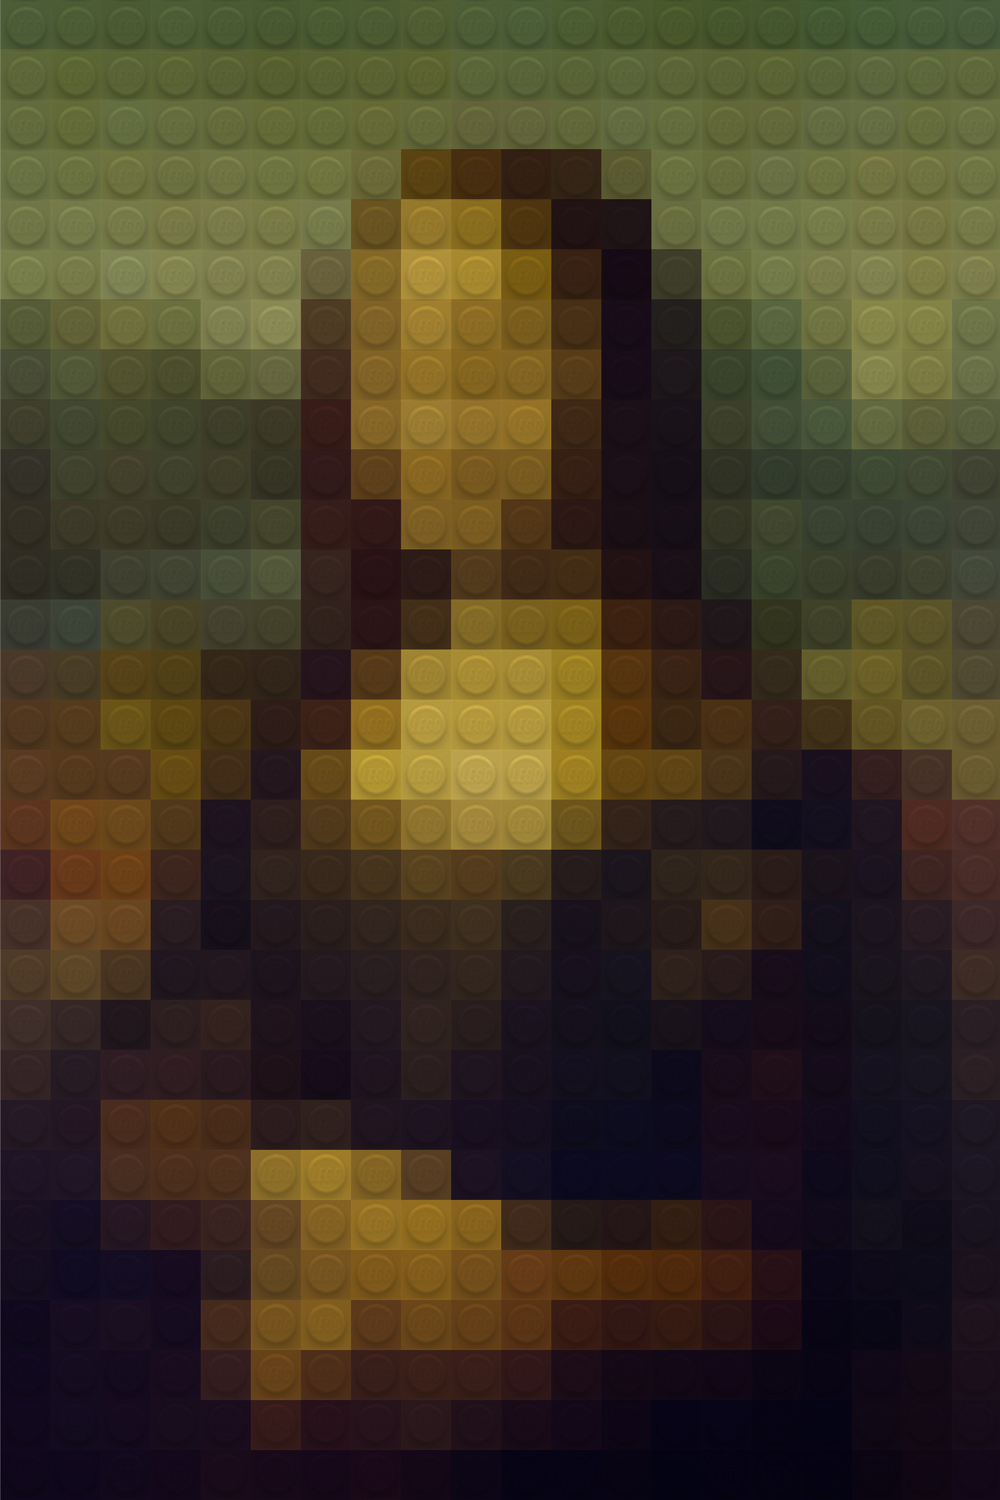 """Mona Lego"" was a project I did for fun to settle an issue I was having with pixel graphics. My theory was that if I could convert  an image into pixels using the Photoshop ""Pixelate"" filter, then I could apply a pattern of 1x1 lego blocks to create the illusion that I did all of the work putting together the pieces in person. This way, fortunately, I could create a Photoshop action and save myself HOURS, while also gaining infinitely many colors to work with. The complexity of math in this project proved to be overwhelming at first, but after a couple of coffee breaks, I was successful in creating a working template that could be used for virtually any source image."